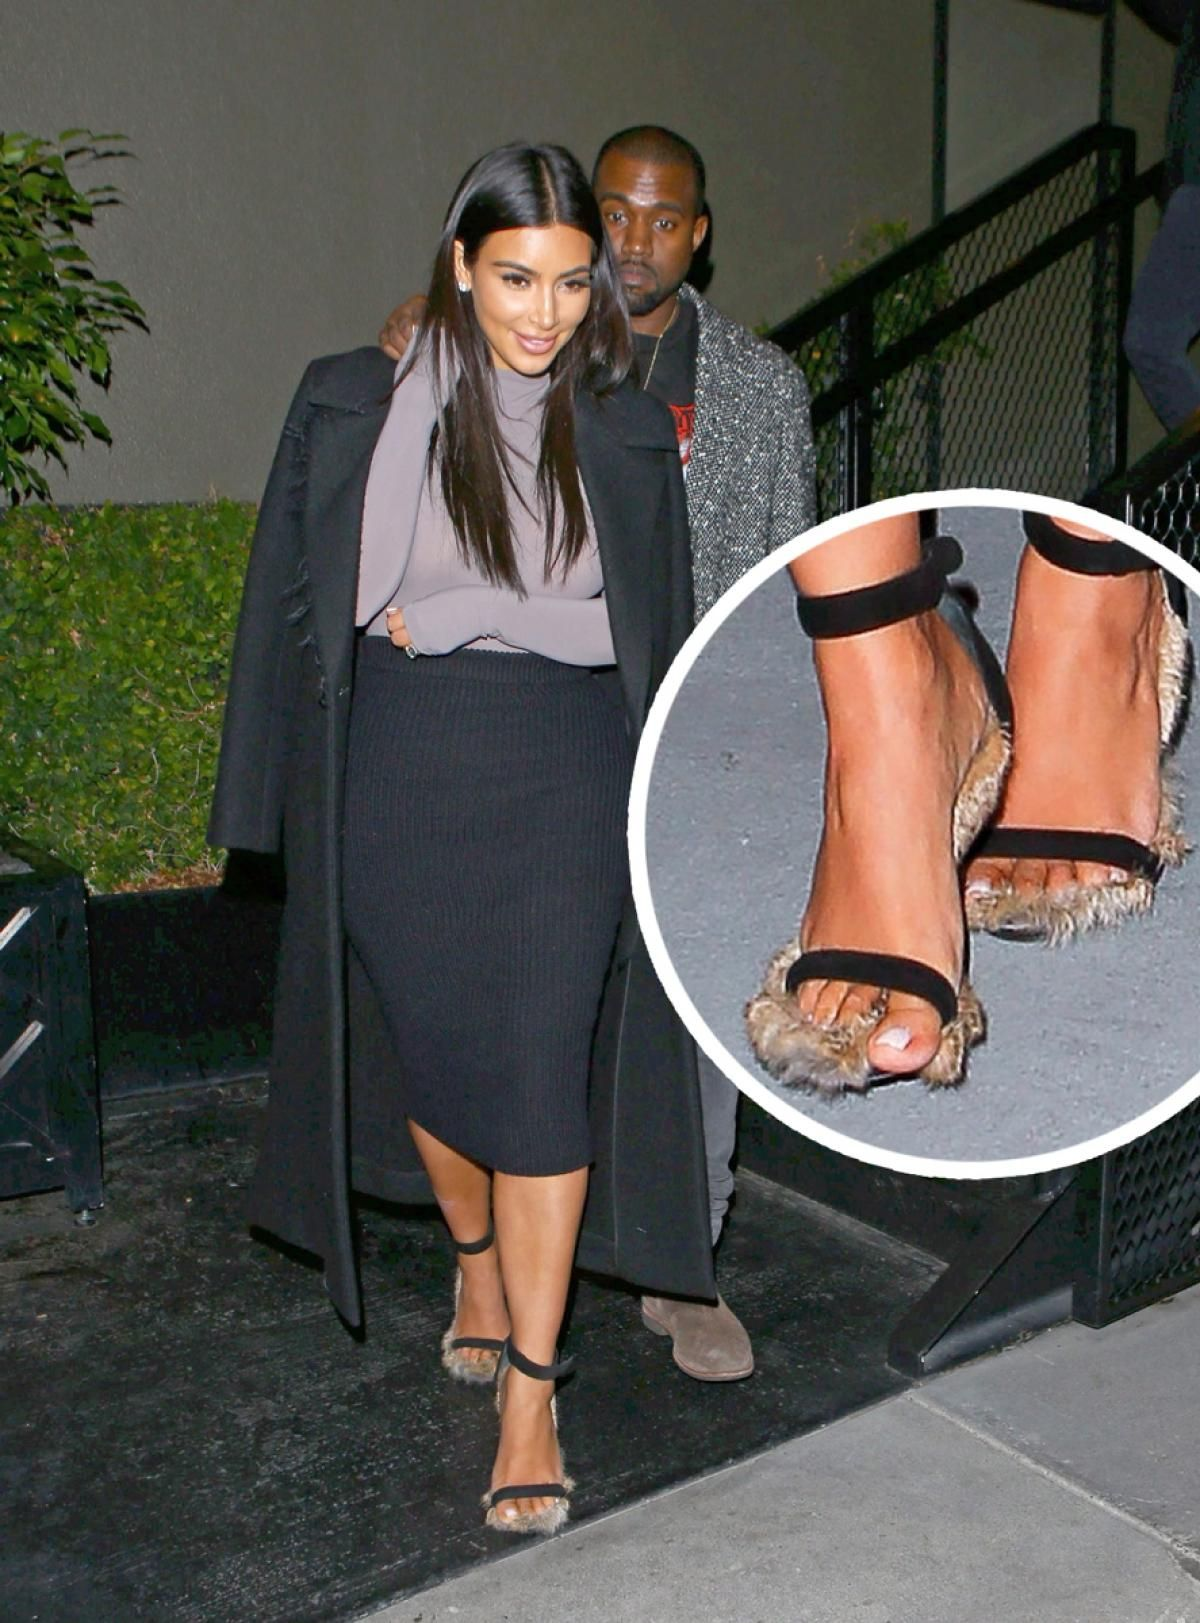 77a9a2b6b Kim Kardashian wears fur lined heels when out with Kanye West on date night  in California.